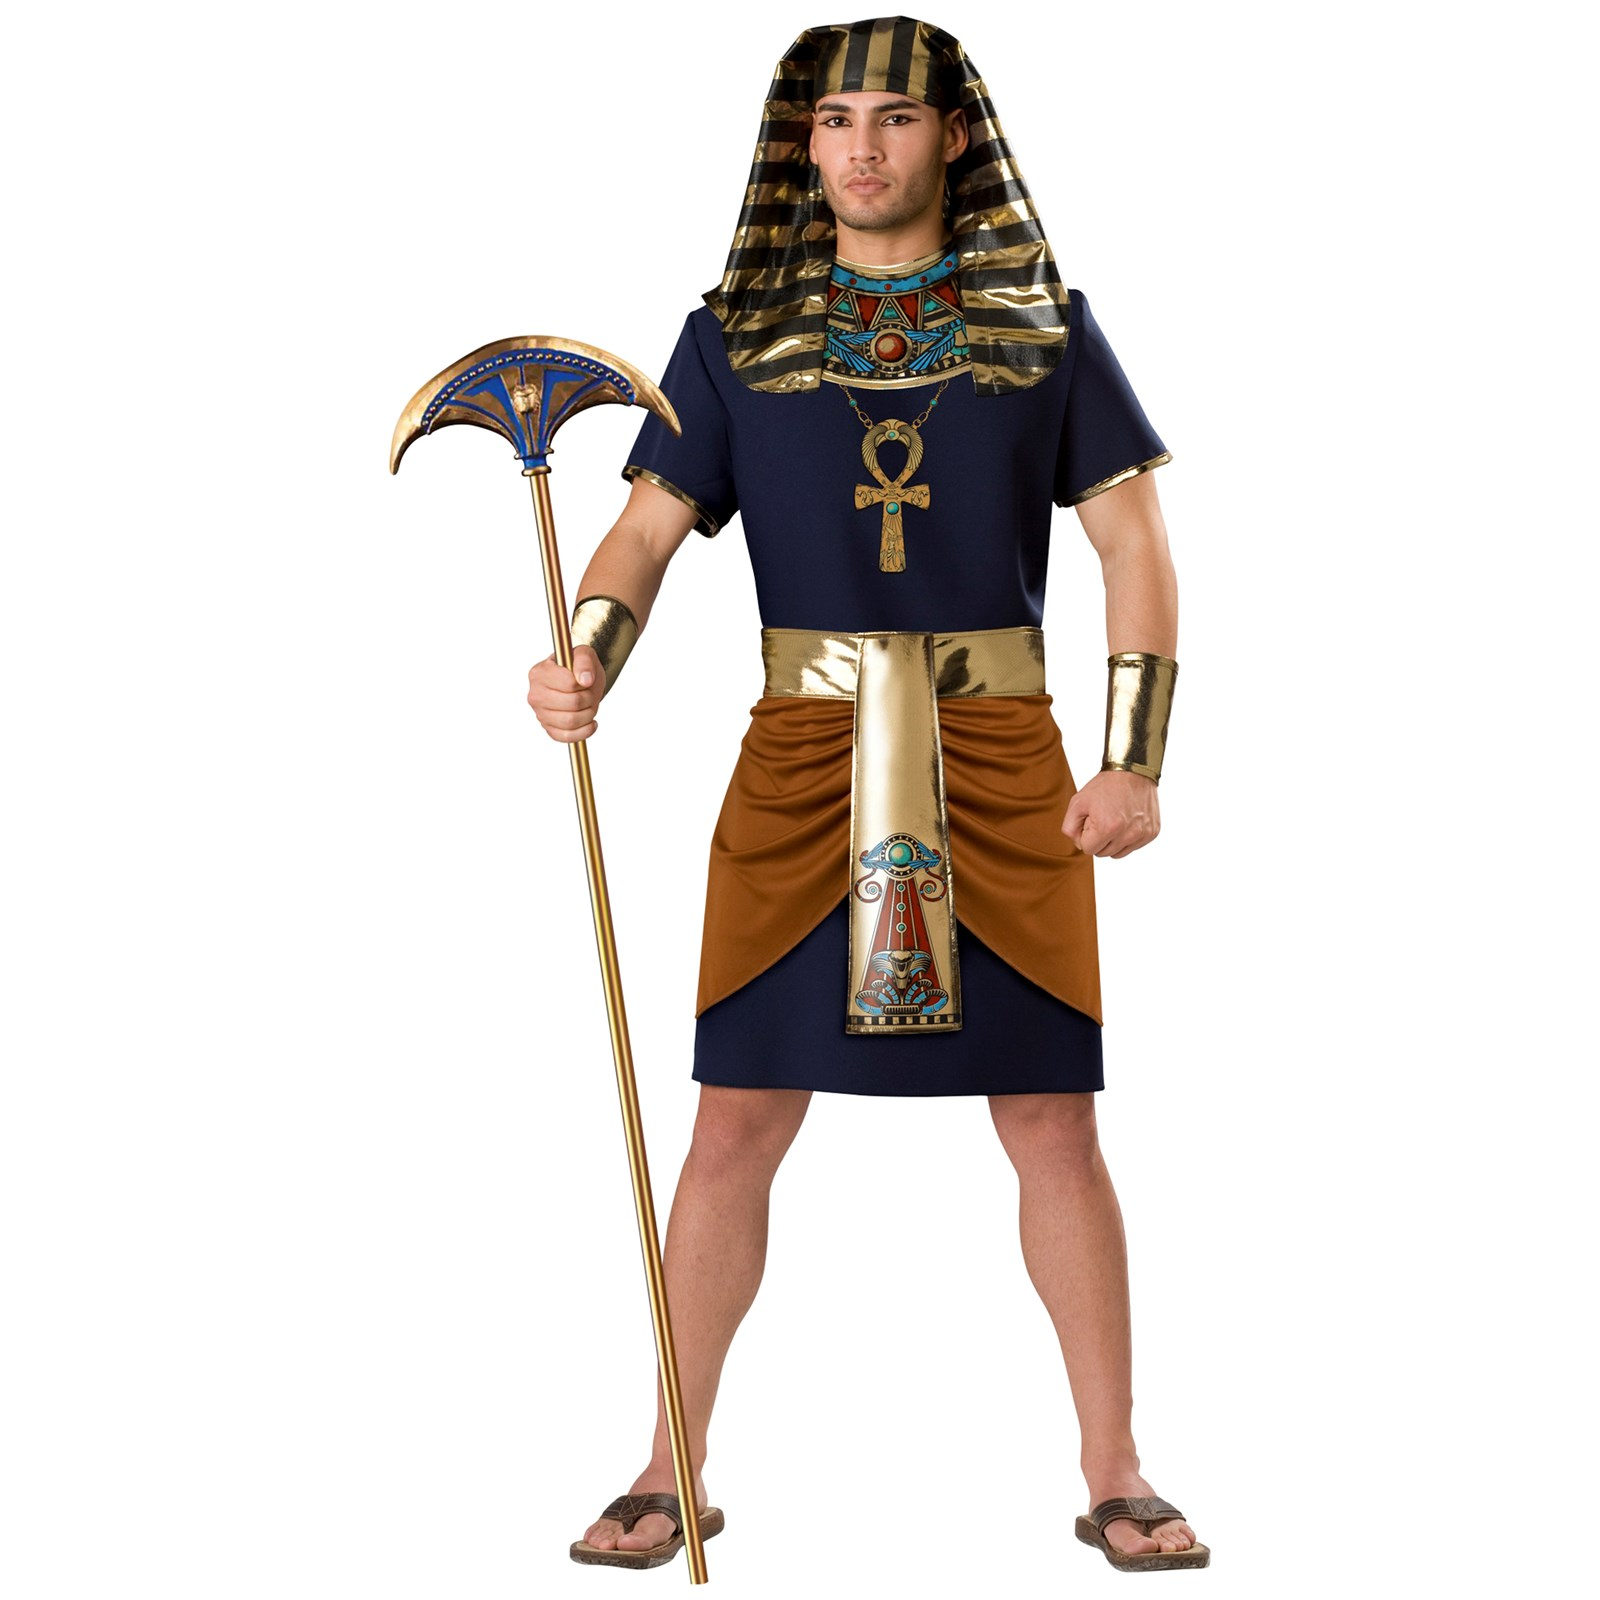 Home gt gt cleopatra costumes gt gt jewel of the nile egyptian adult - Egyptian Man Adult Costume